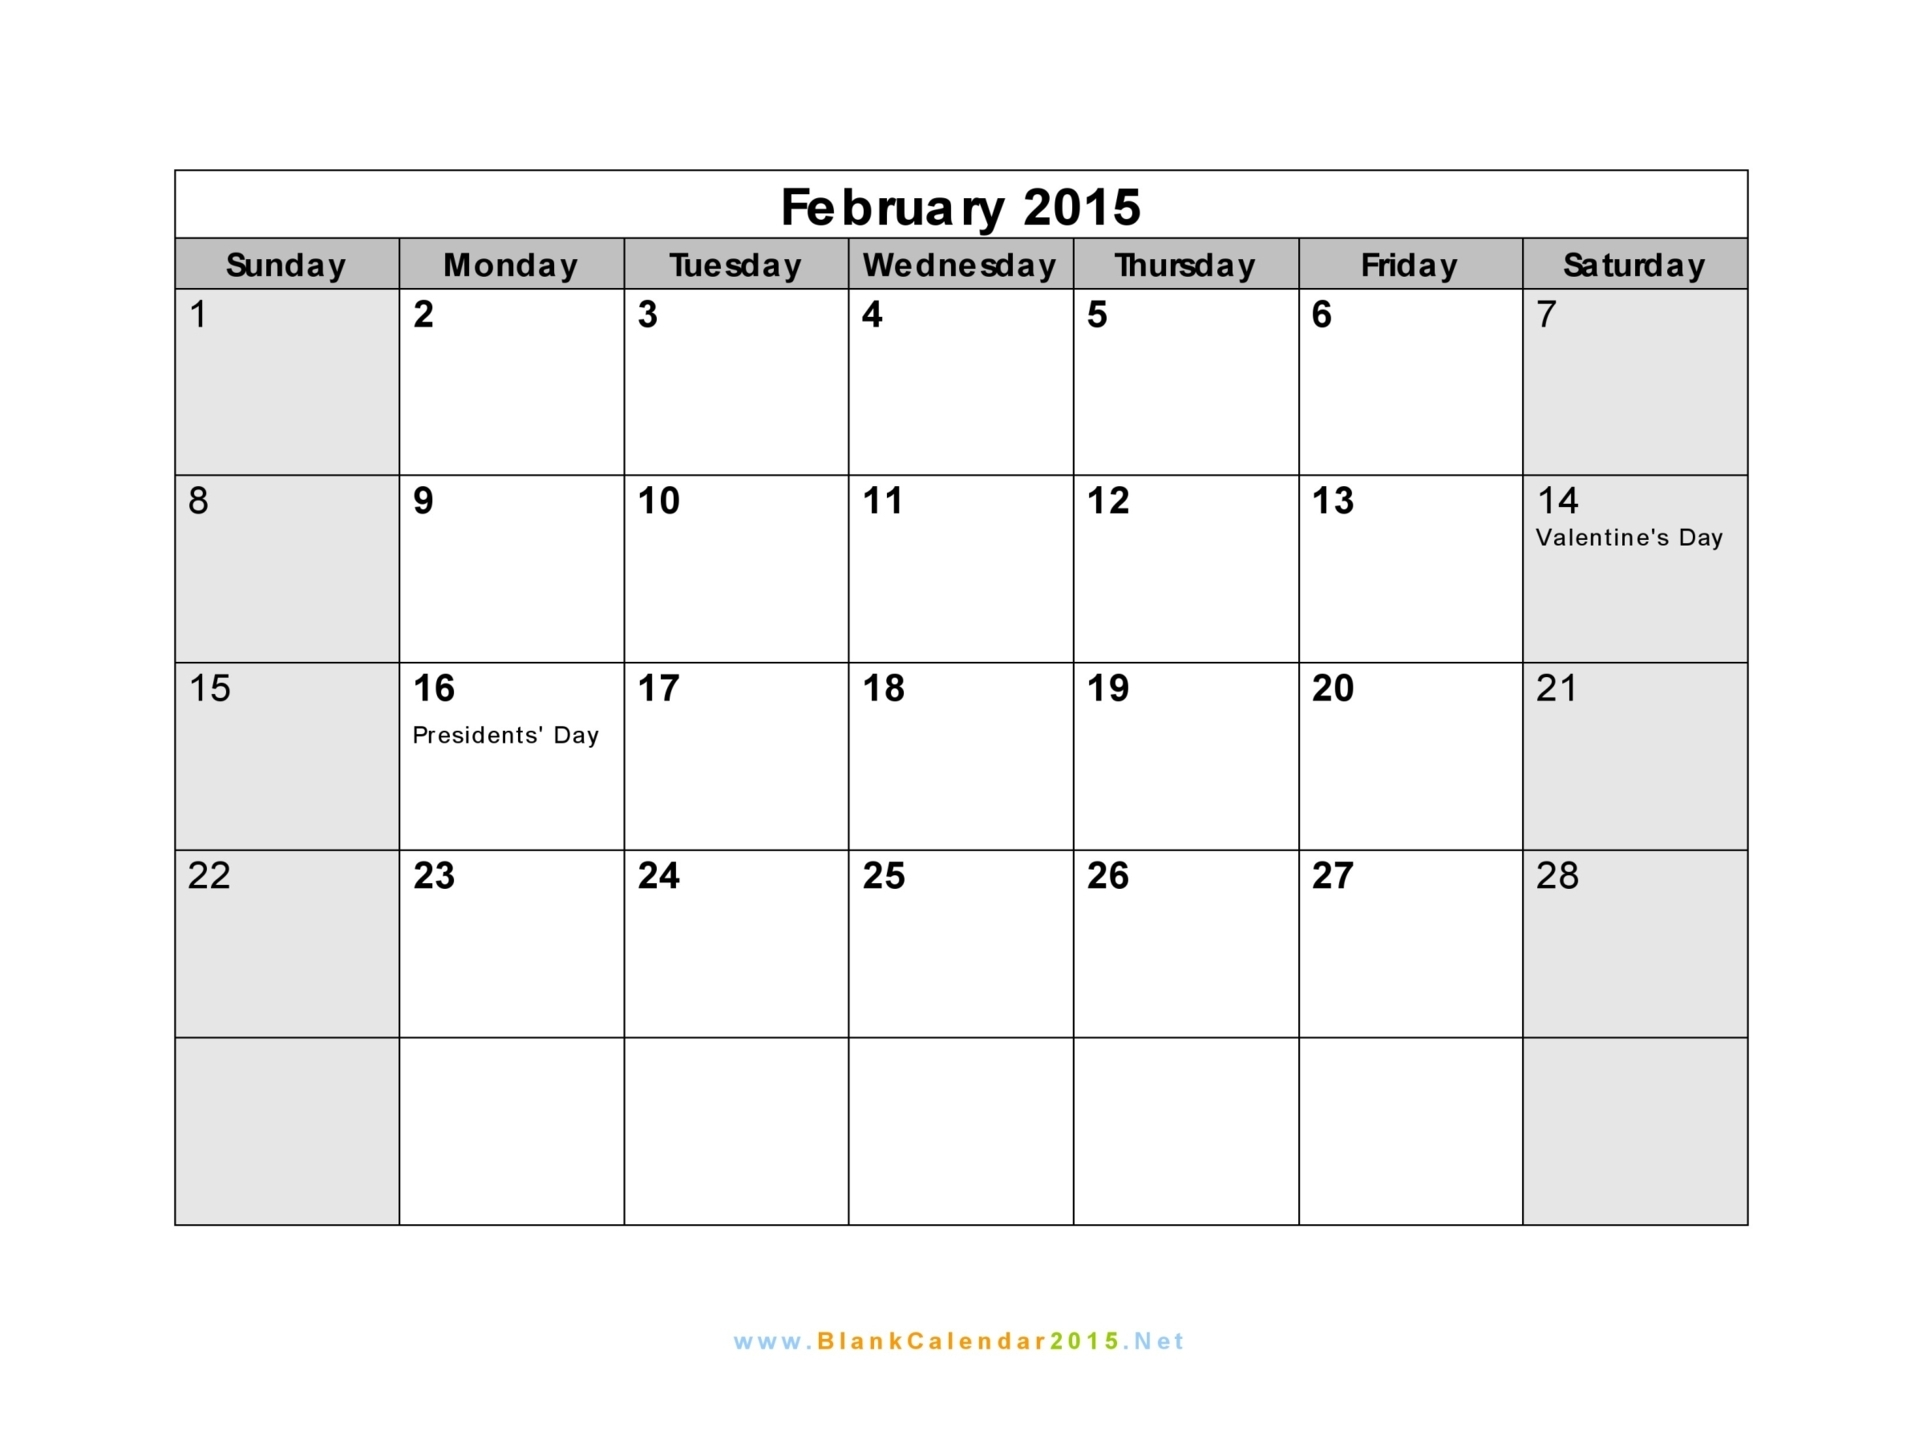 February 2015 calendar page clipart banner transparent download February 2015 calendar page clipart - ClipartFest banner transparent download